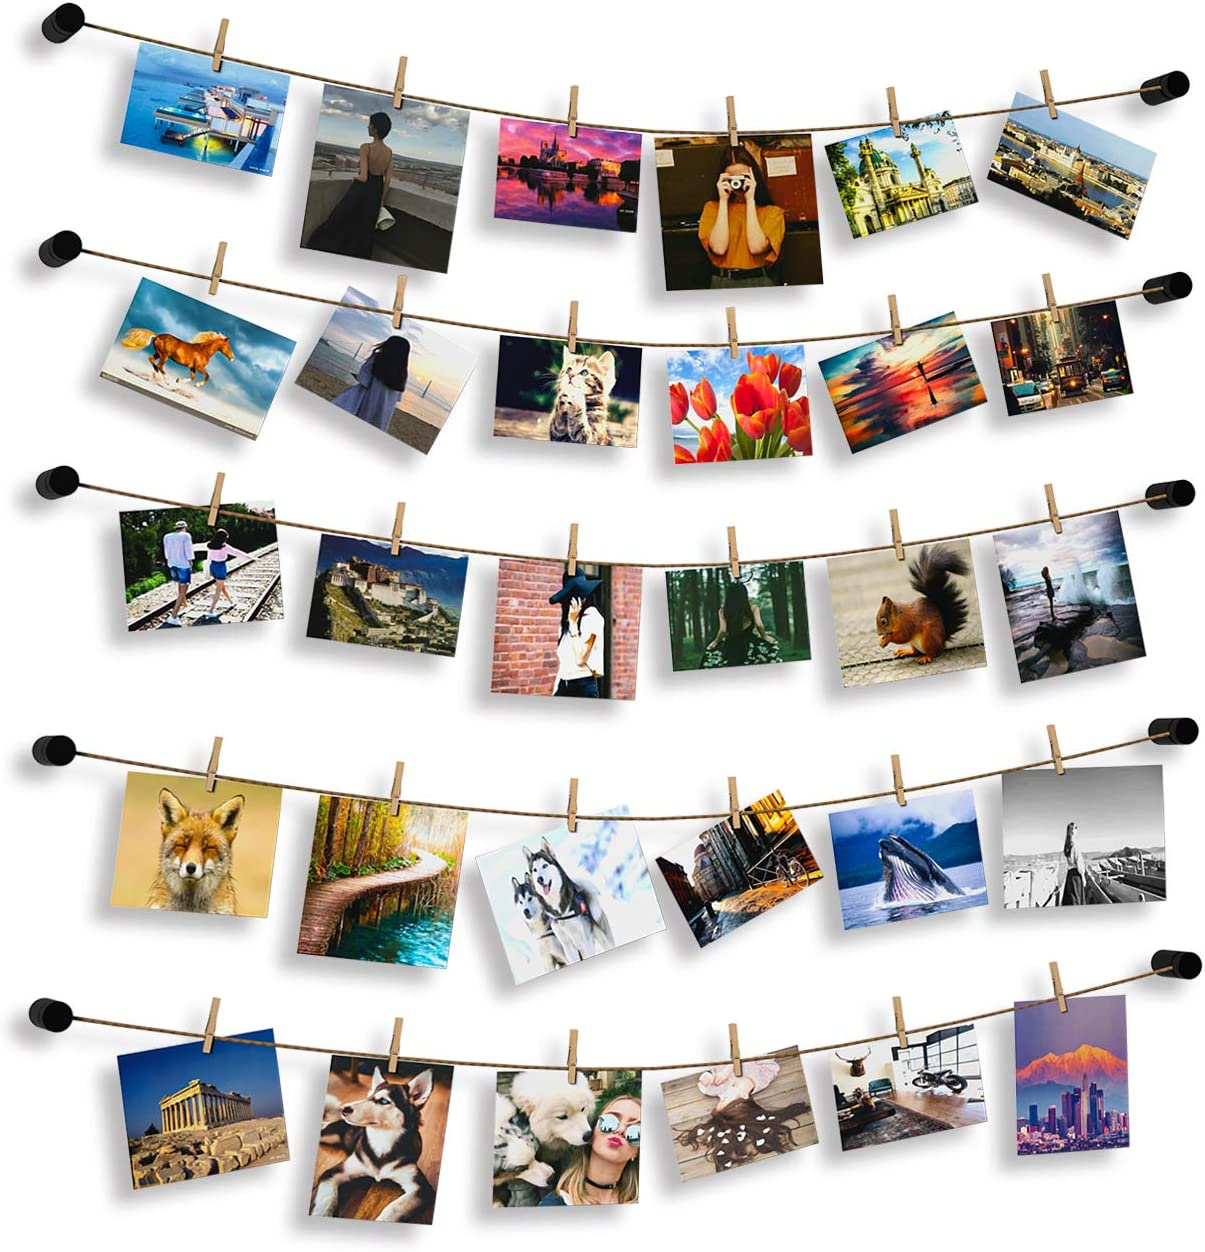 Hosom String Picture Hanger with Clips, Photo Display String with Clips to Hang Pictures, 16.5ft Picture Display Clothesline, 30pcs Photo Clothespins, 10pcs Black Standoffs